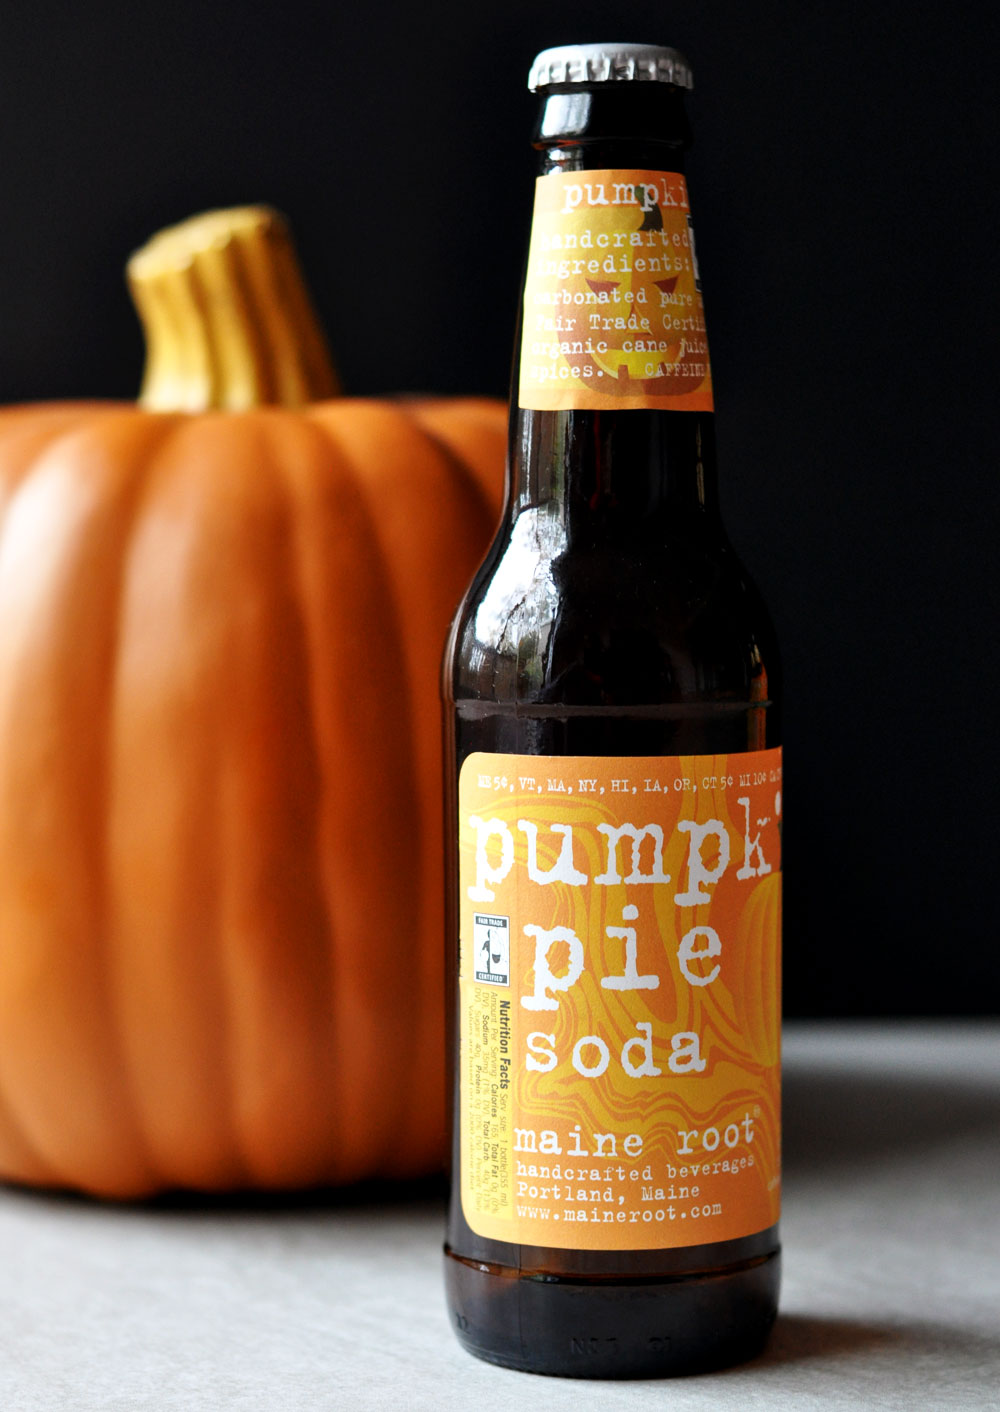 Fall Fun Series | Plethora of Pumpkin | Maine Root Pumpkin Pie Soda